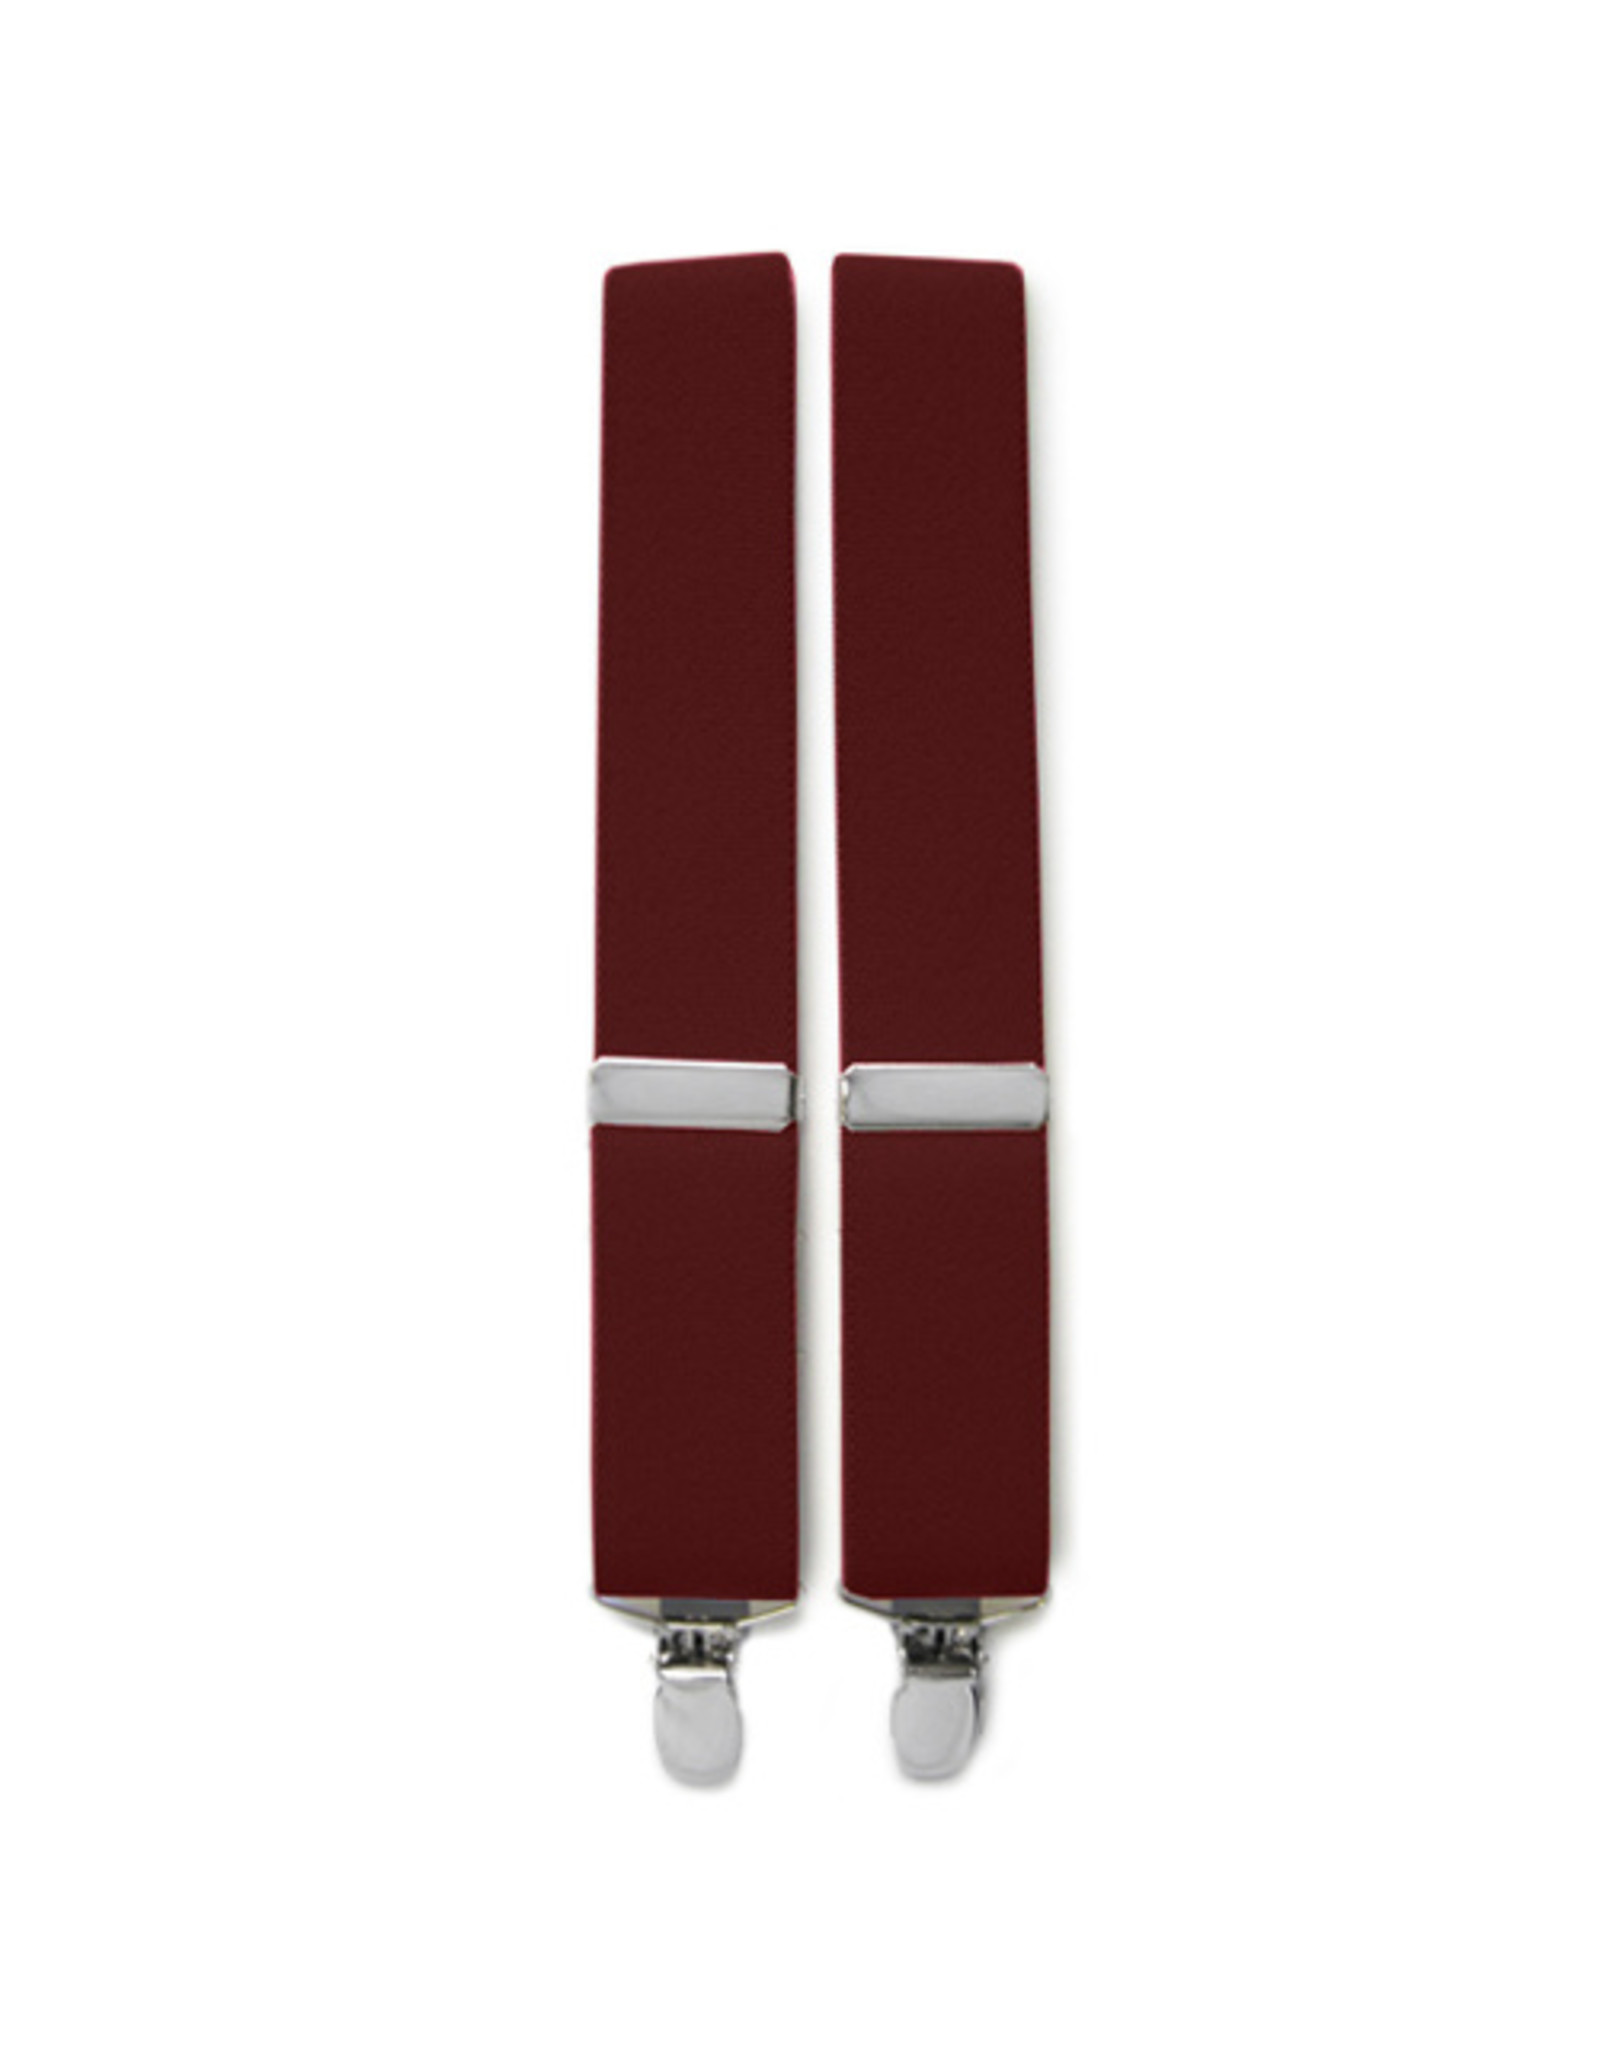 Match International Suspenders. Model CE 3142